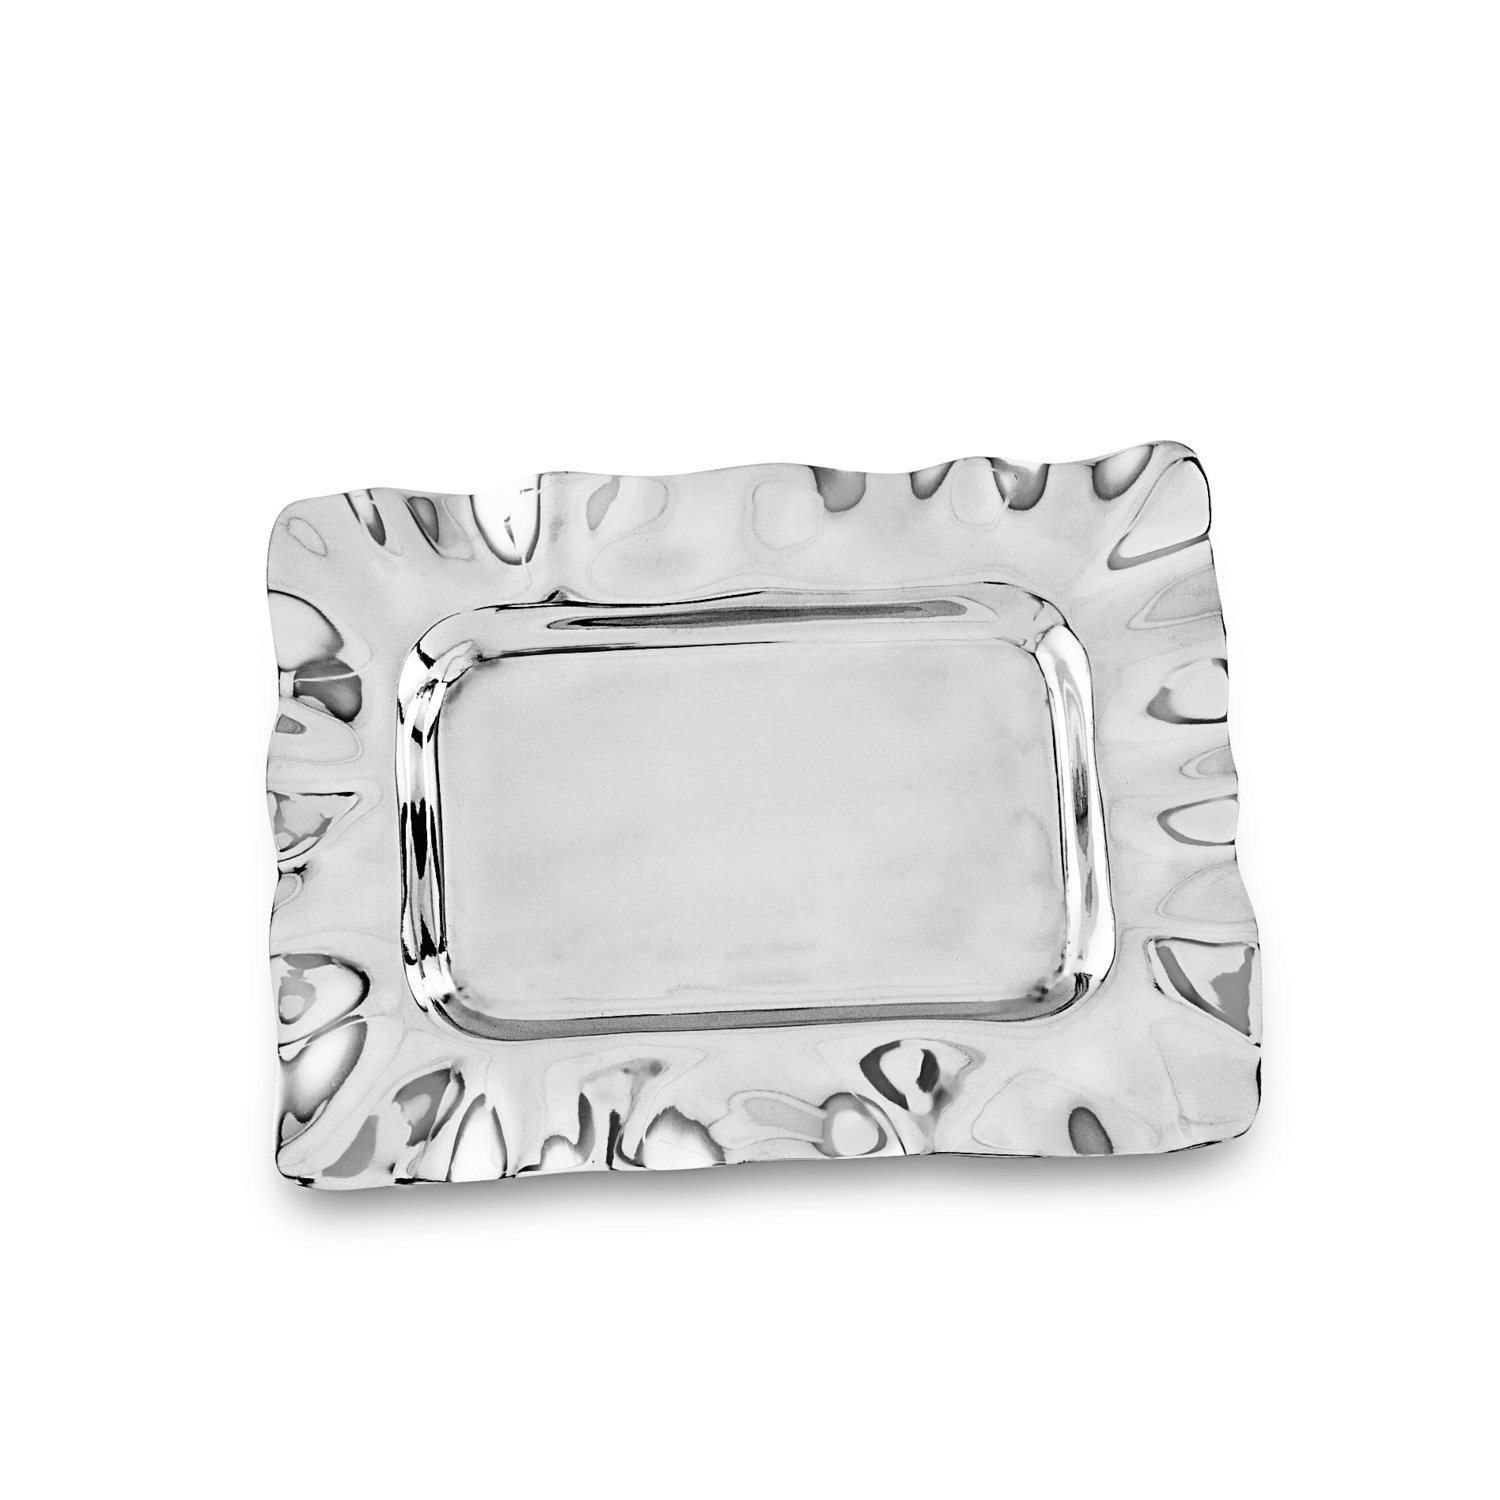 Beatriz Ball_6486 breakfast-trays, Metallic